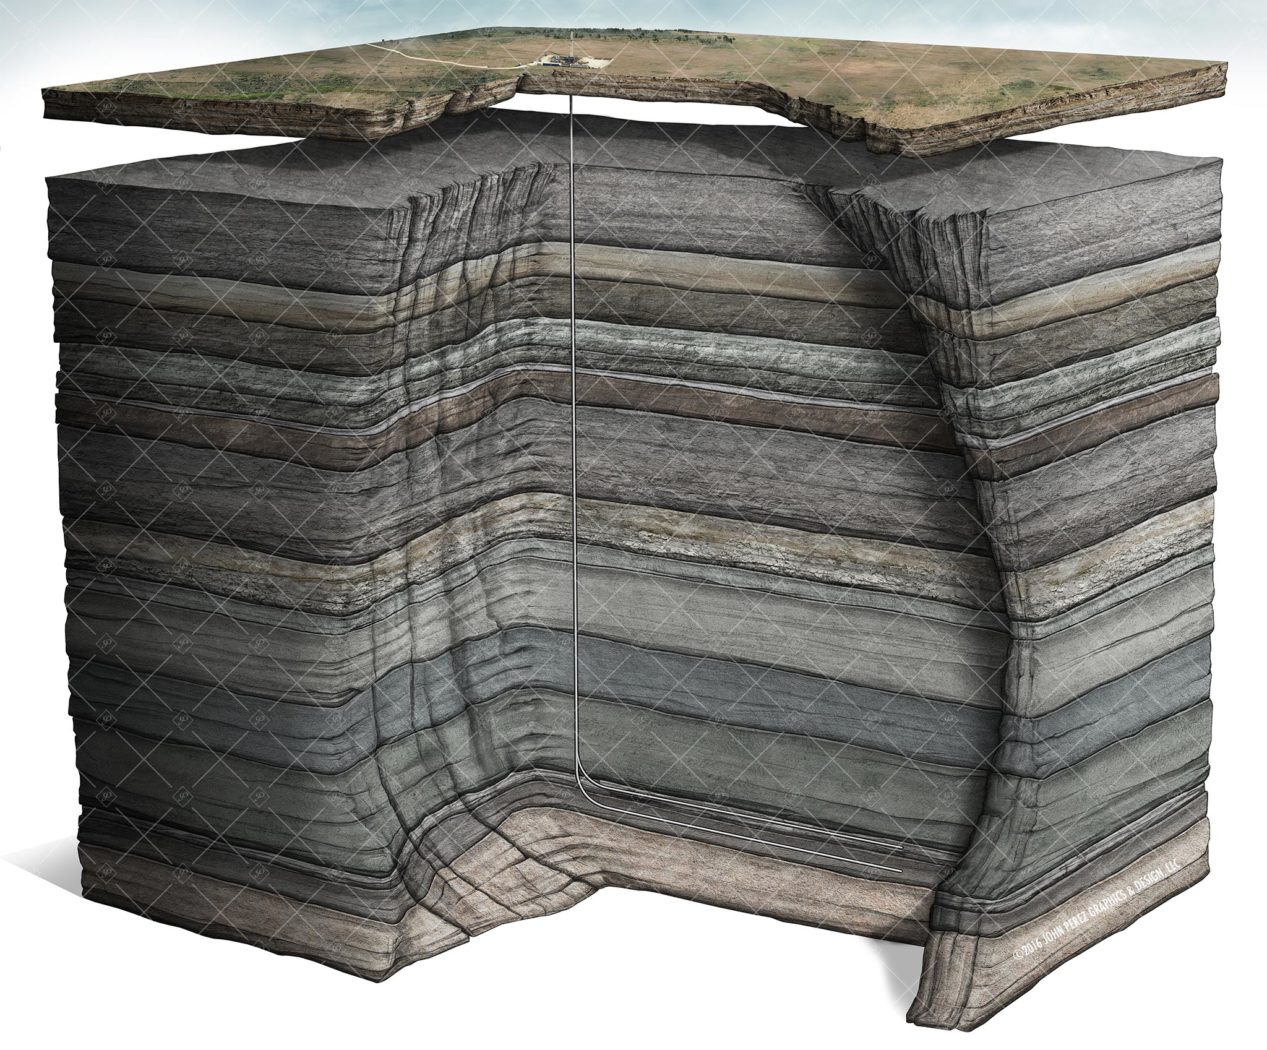 john perez graphics, Bakken Shale, Dual Horizontals Schematic, drilling  geology, oil and